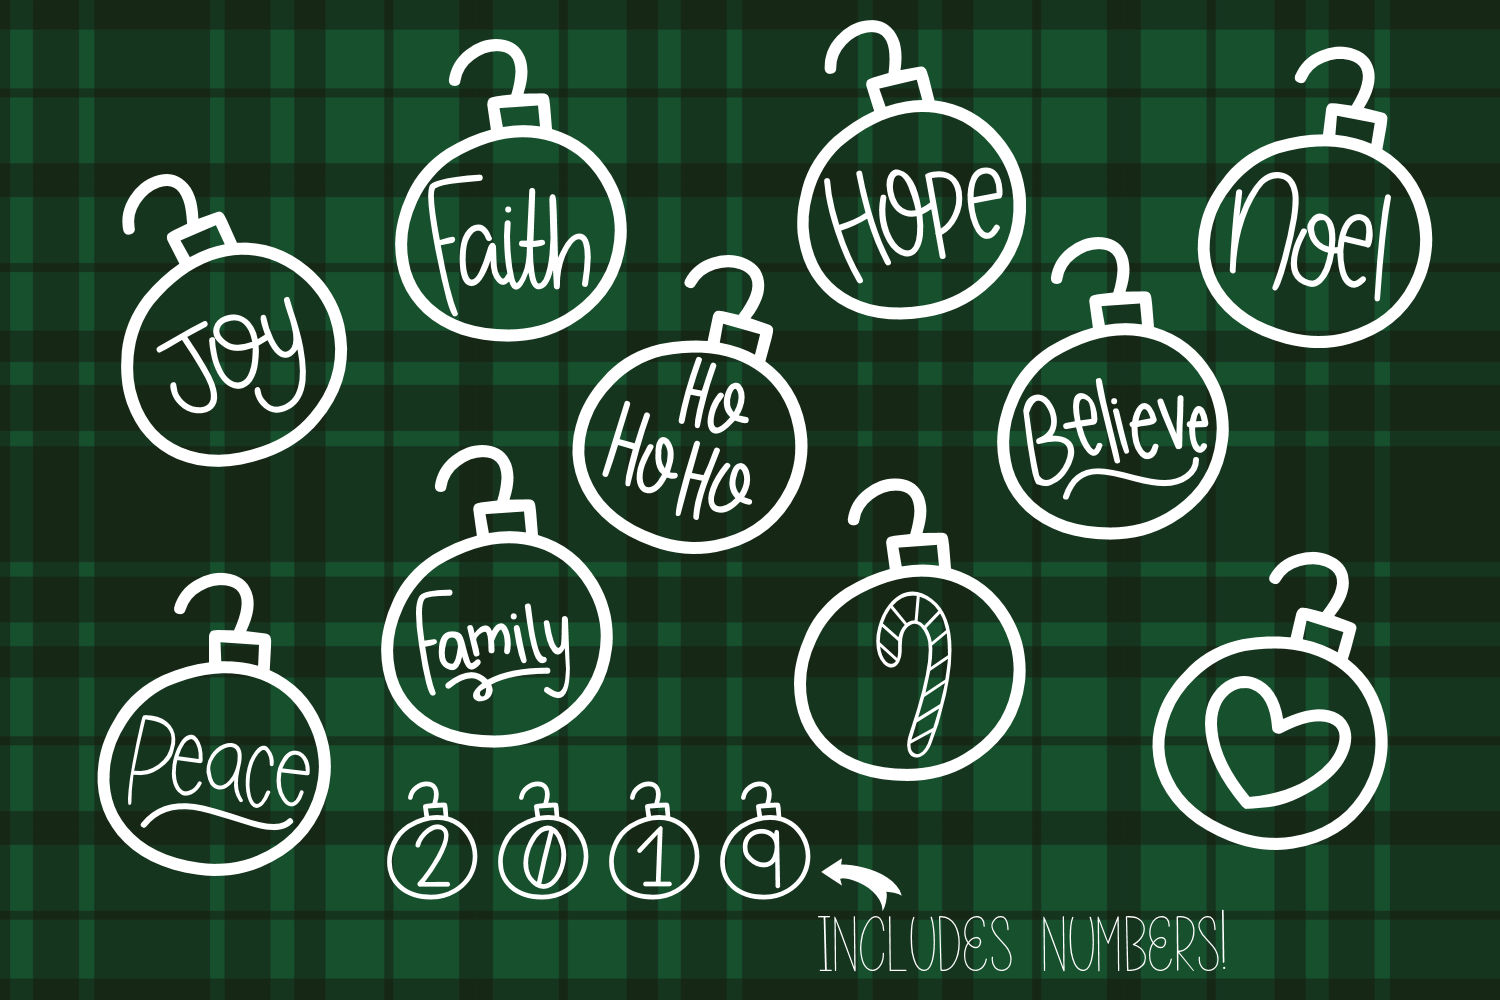 Christmas Baubles - A Christmas Decor Font example image 3